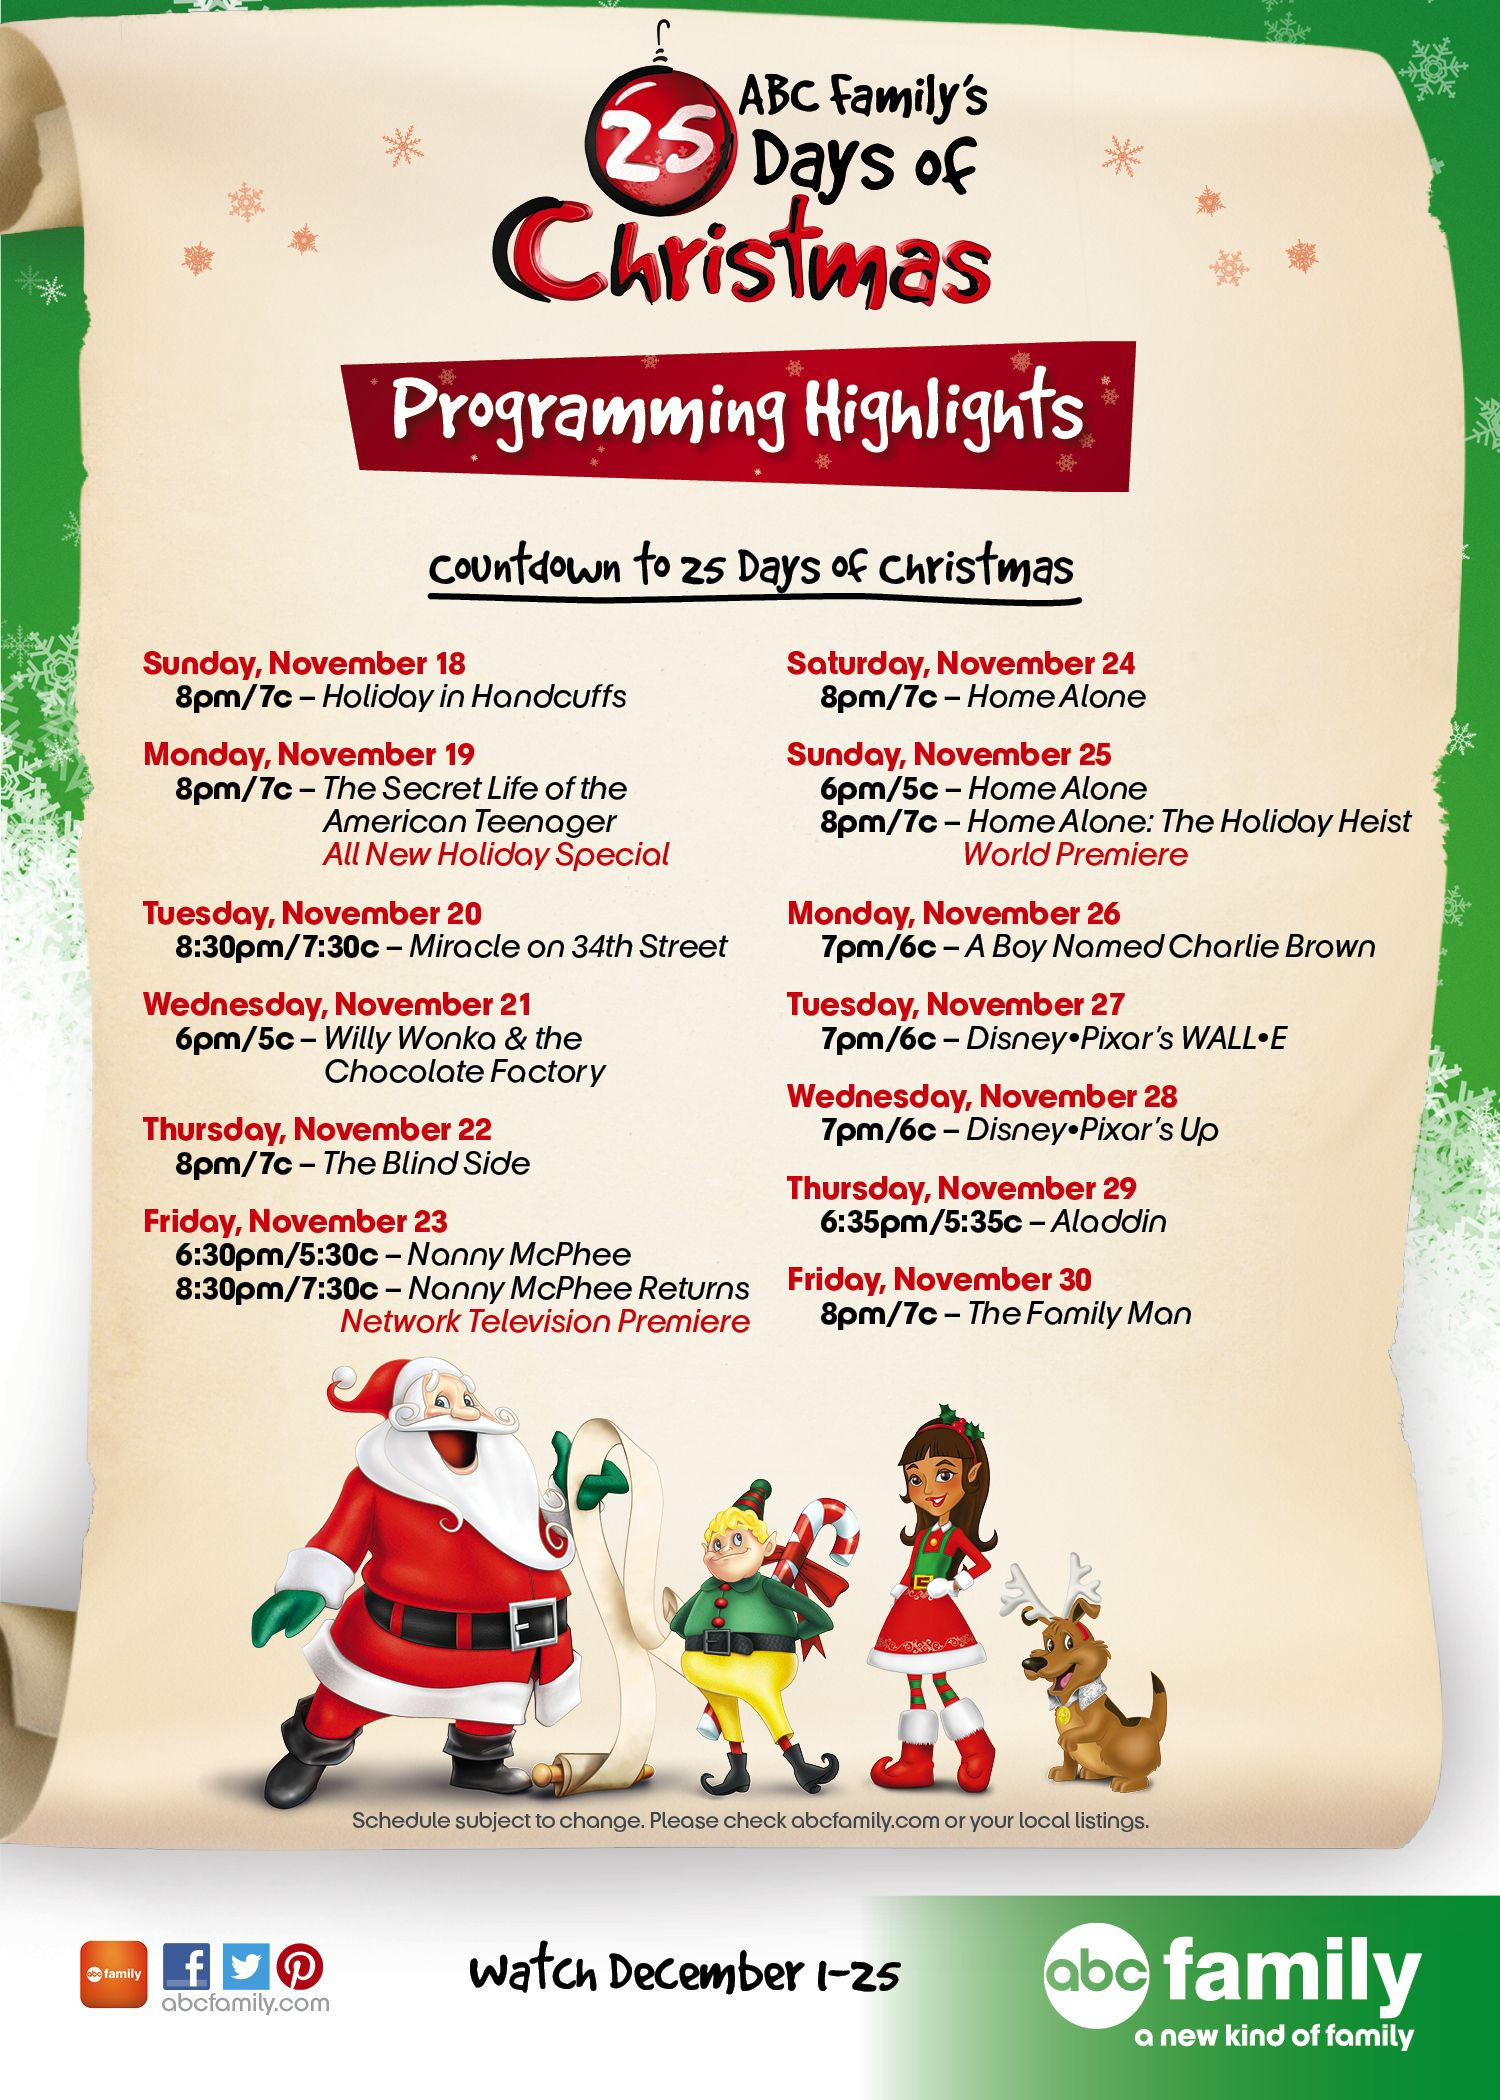 Countdown To 25 Days Of Christmas Programming Highlights 2012